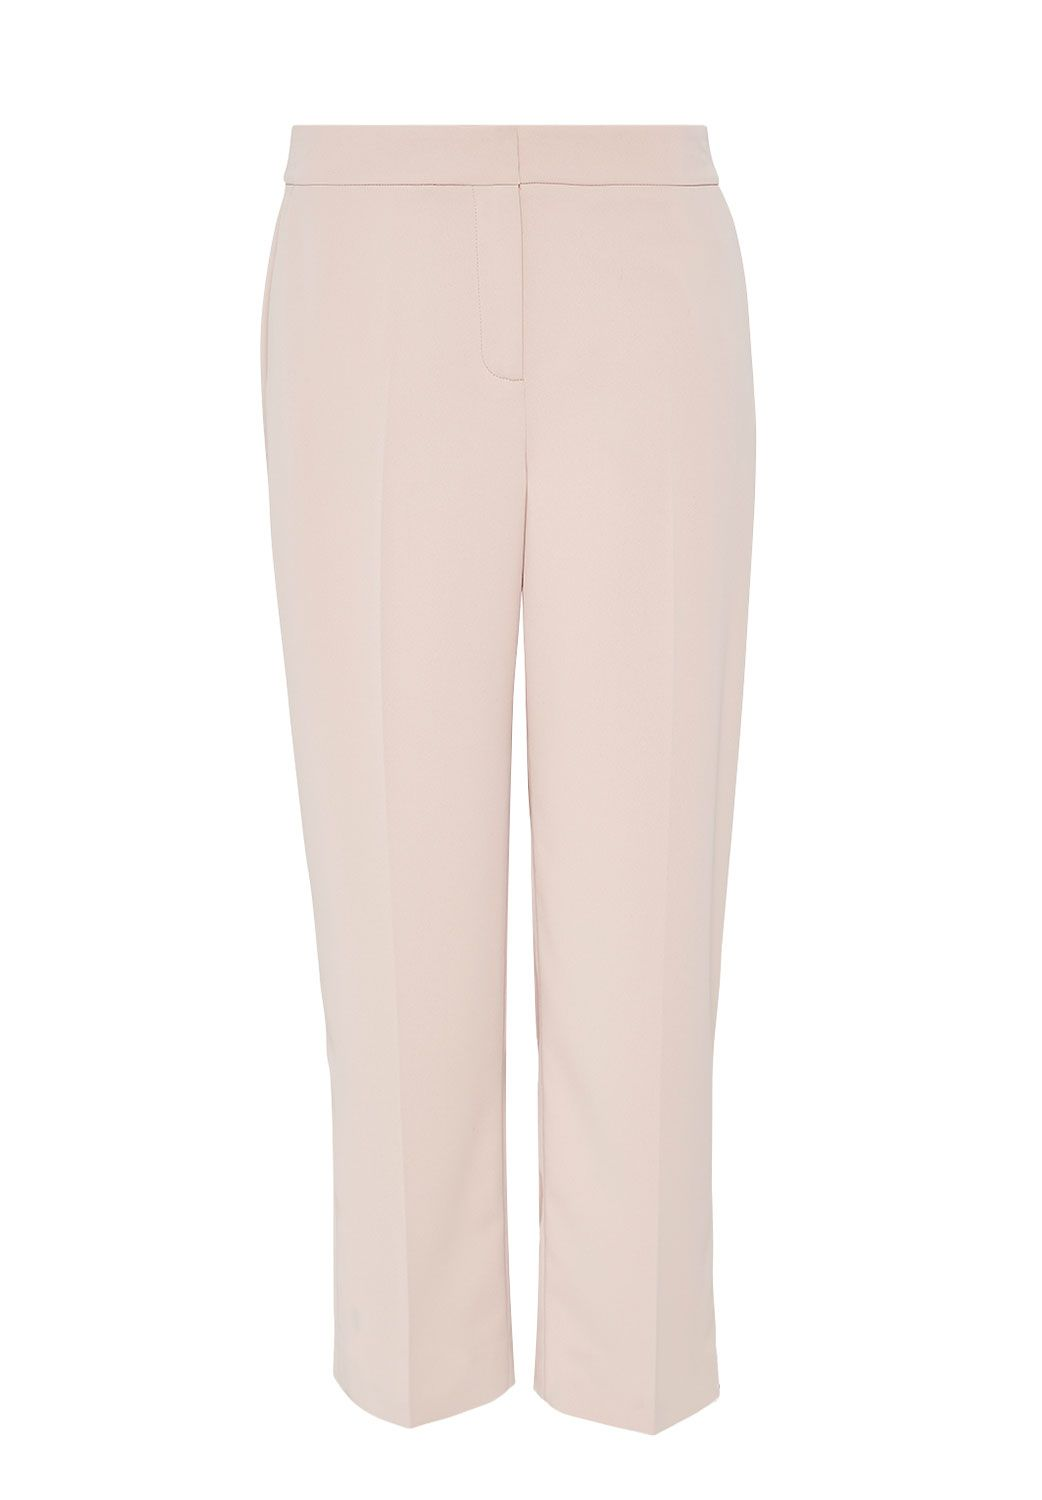 Hallhuber Cropped Marlene Trousers, Pink